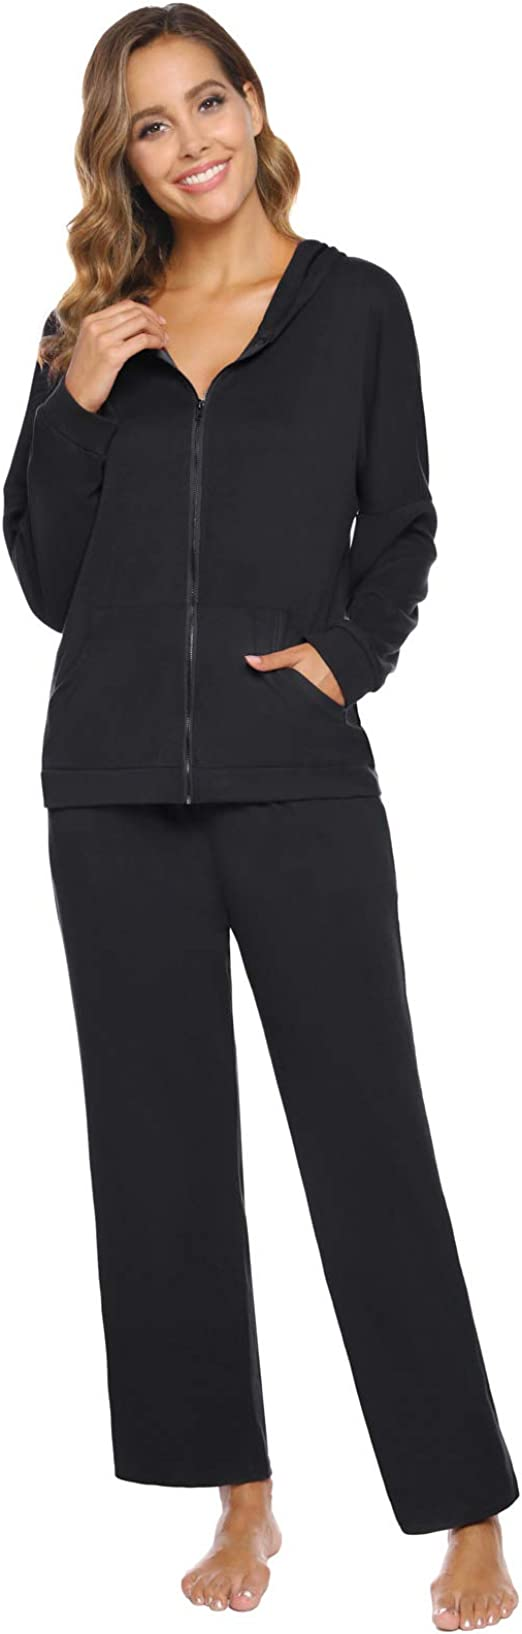 Zexxxy Mens Casual 2 Piece Outfits Full-Zip Hoodie and Sweatpants Jogging Suit